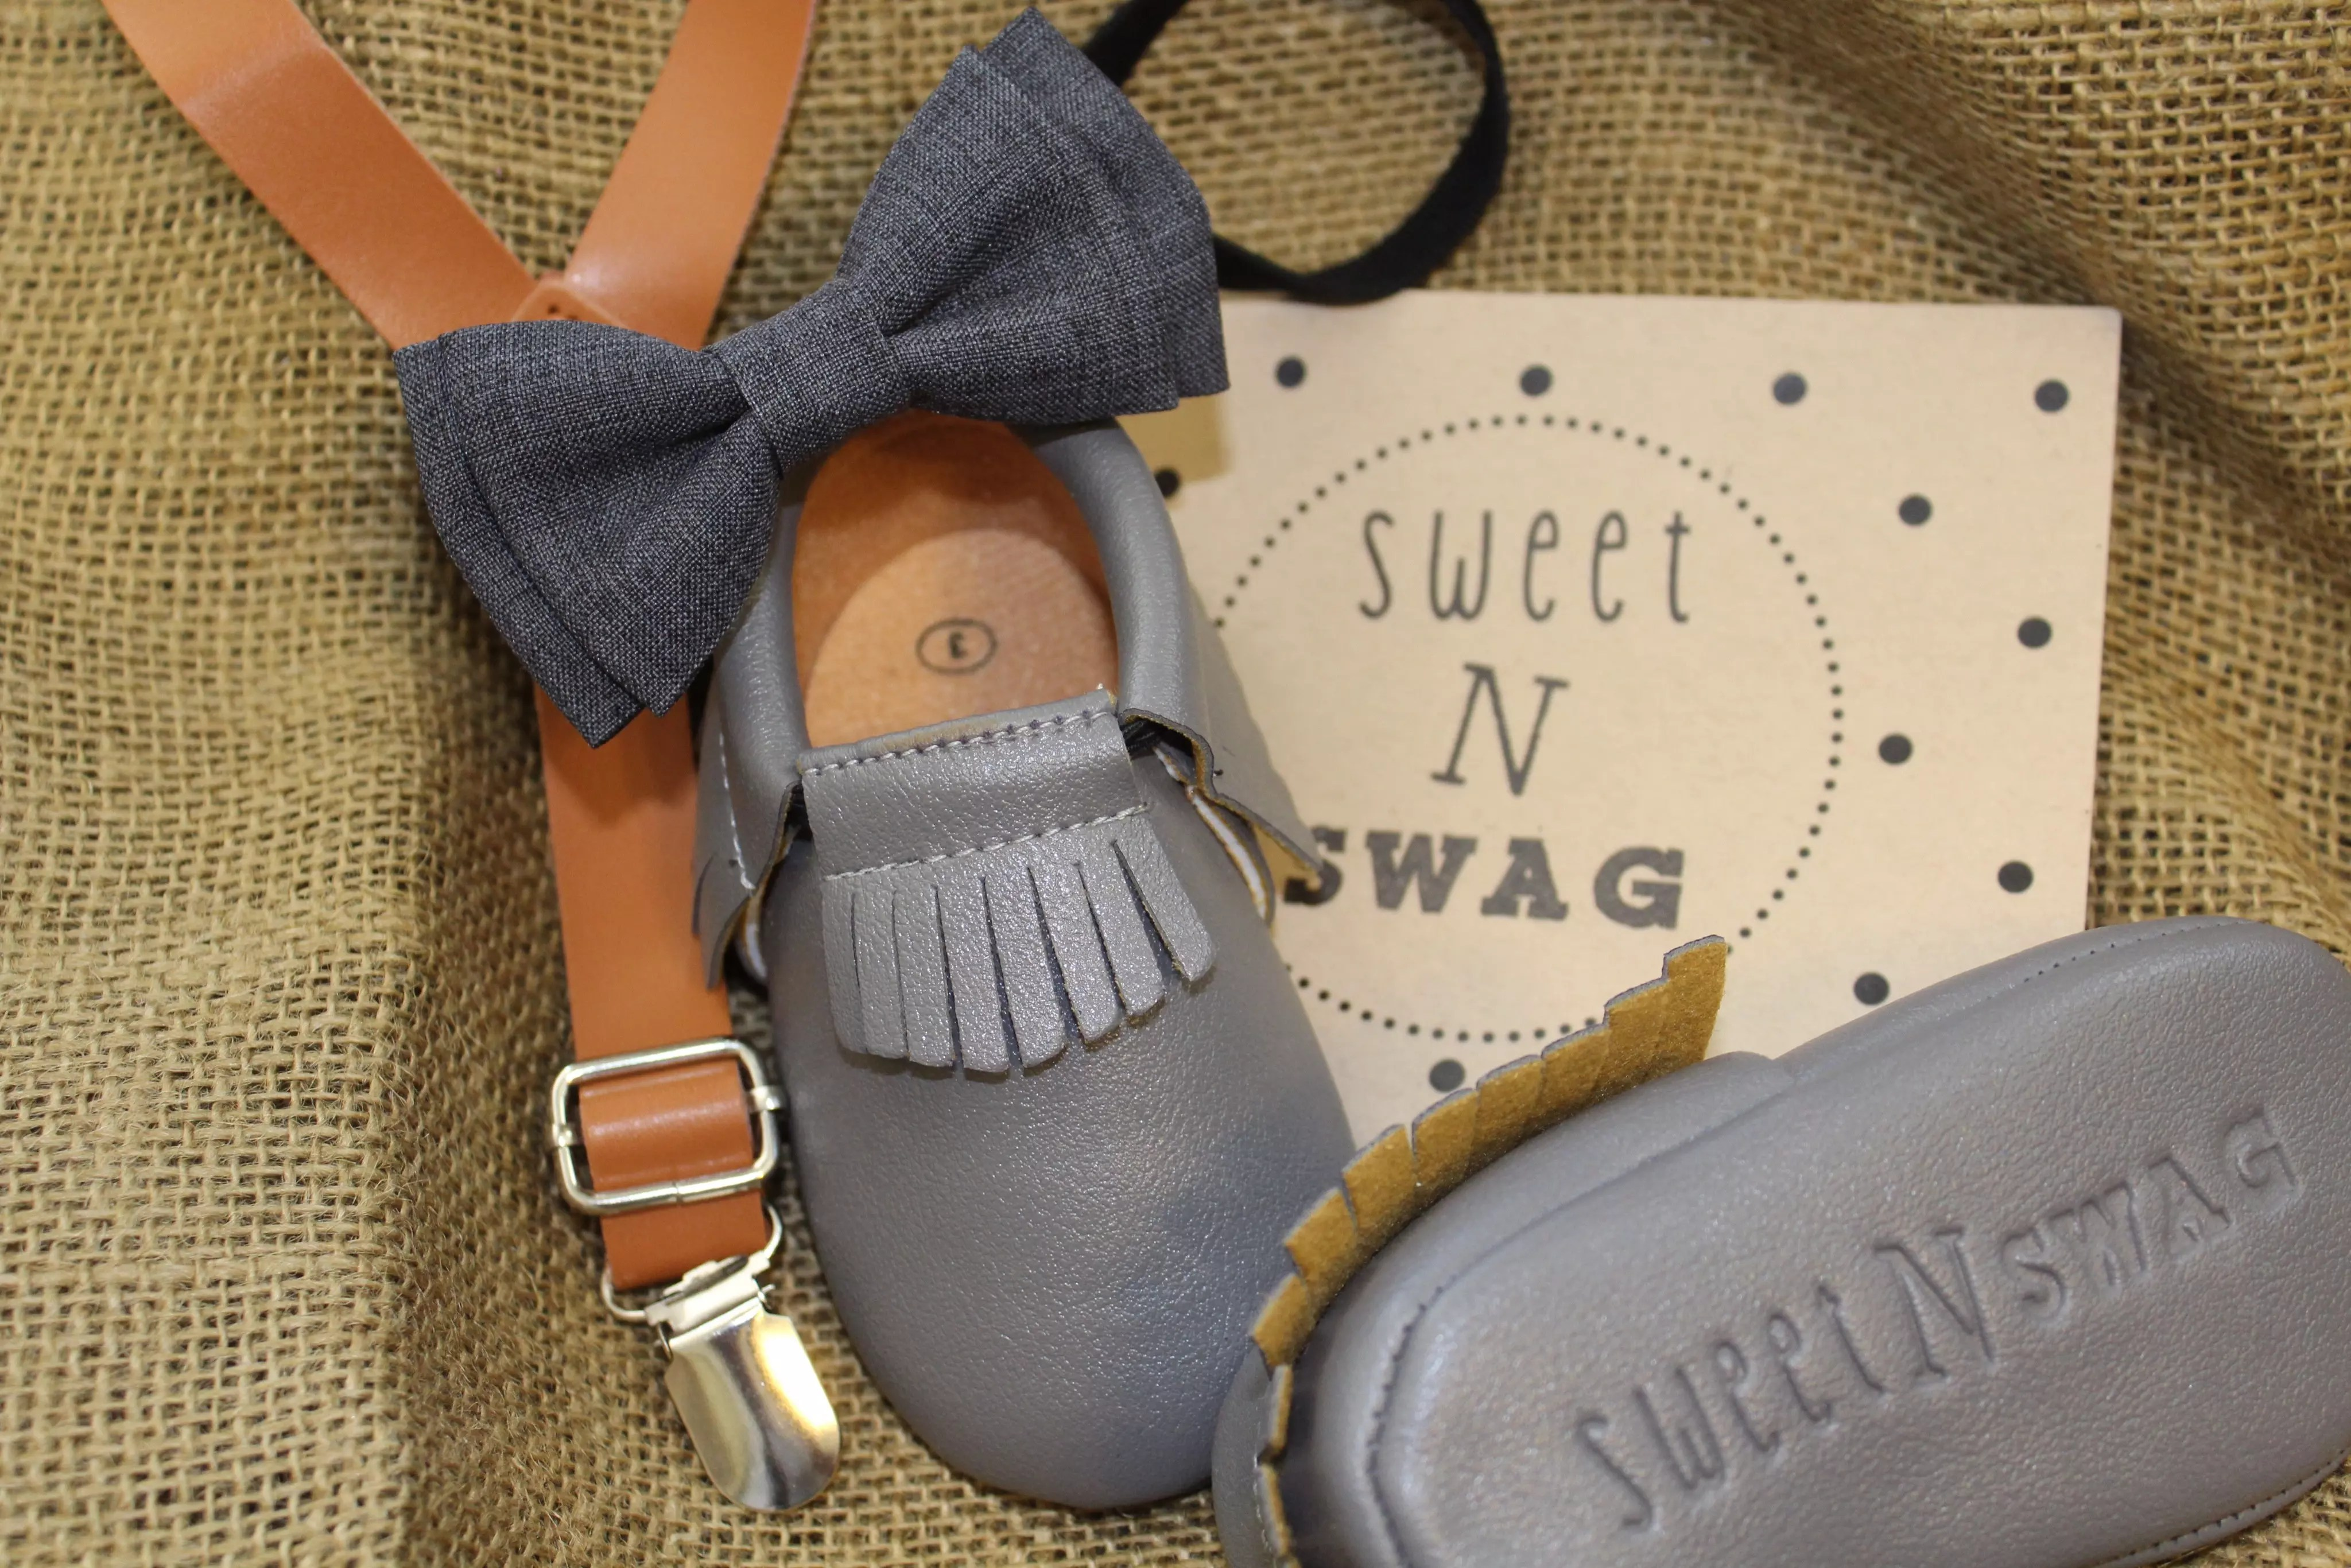 Sweetnswag Coupon code